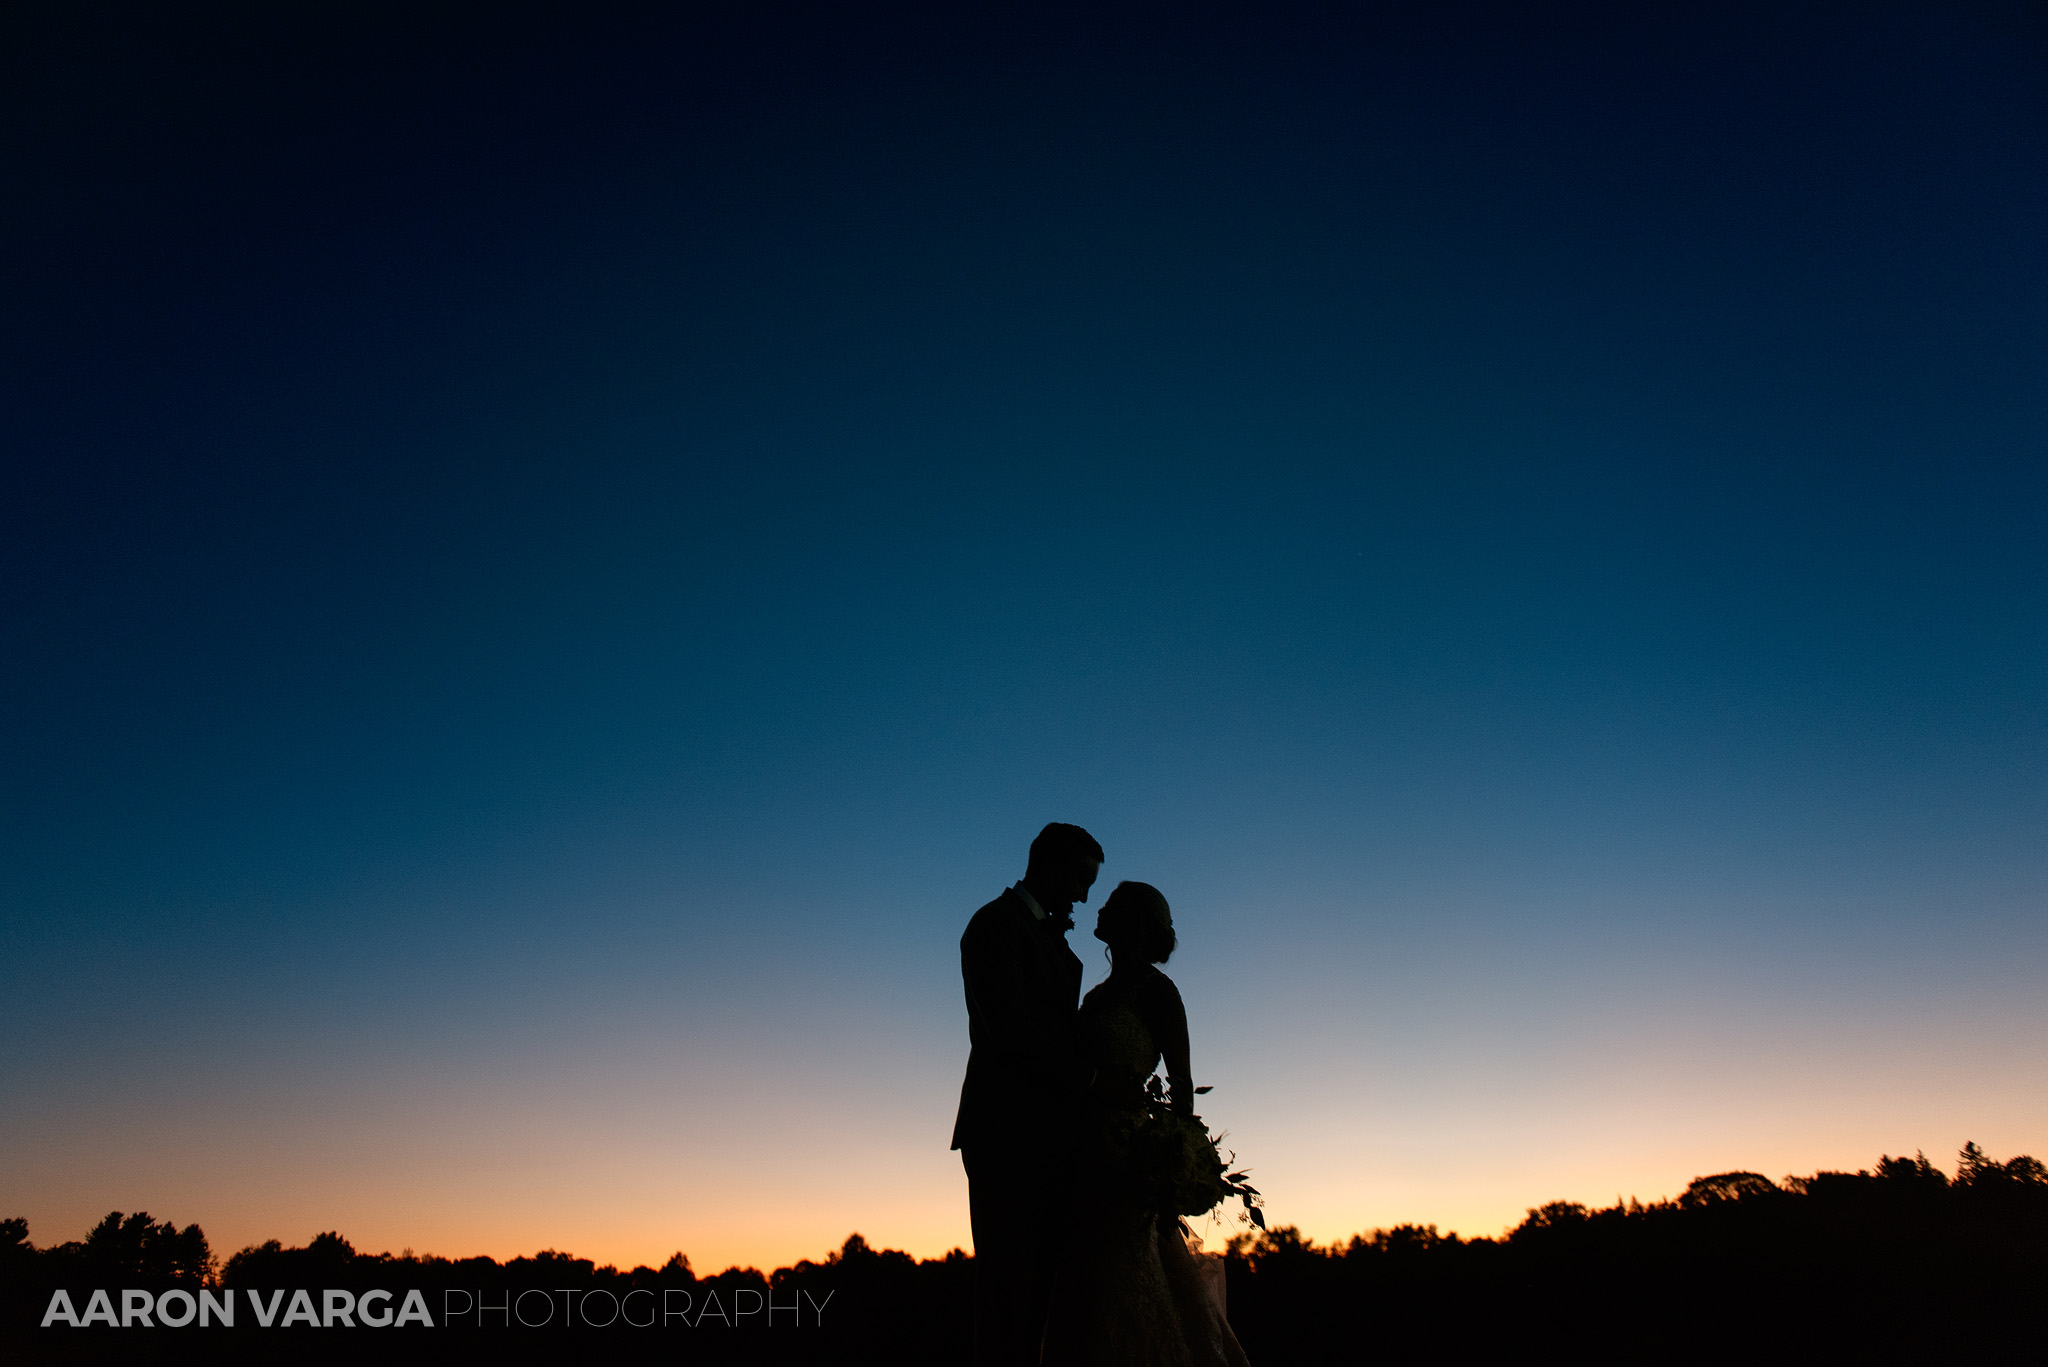 59 montour heights country club silhouette photo wedding - Amy + Bill | Montour Heights Country Club Wedding Photos